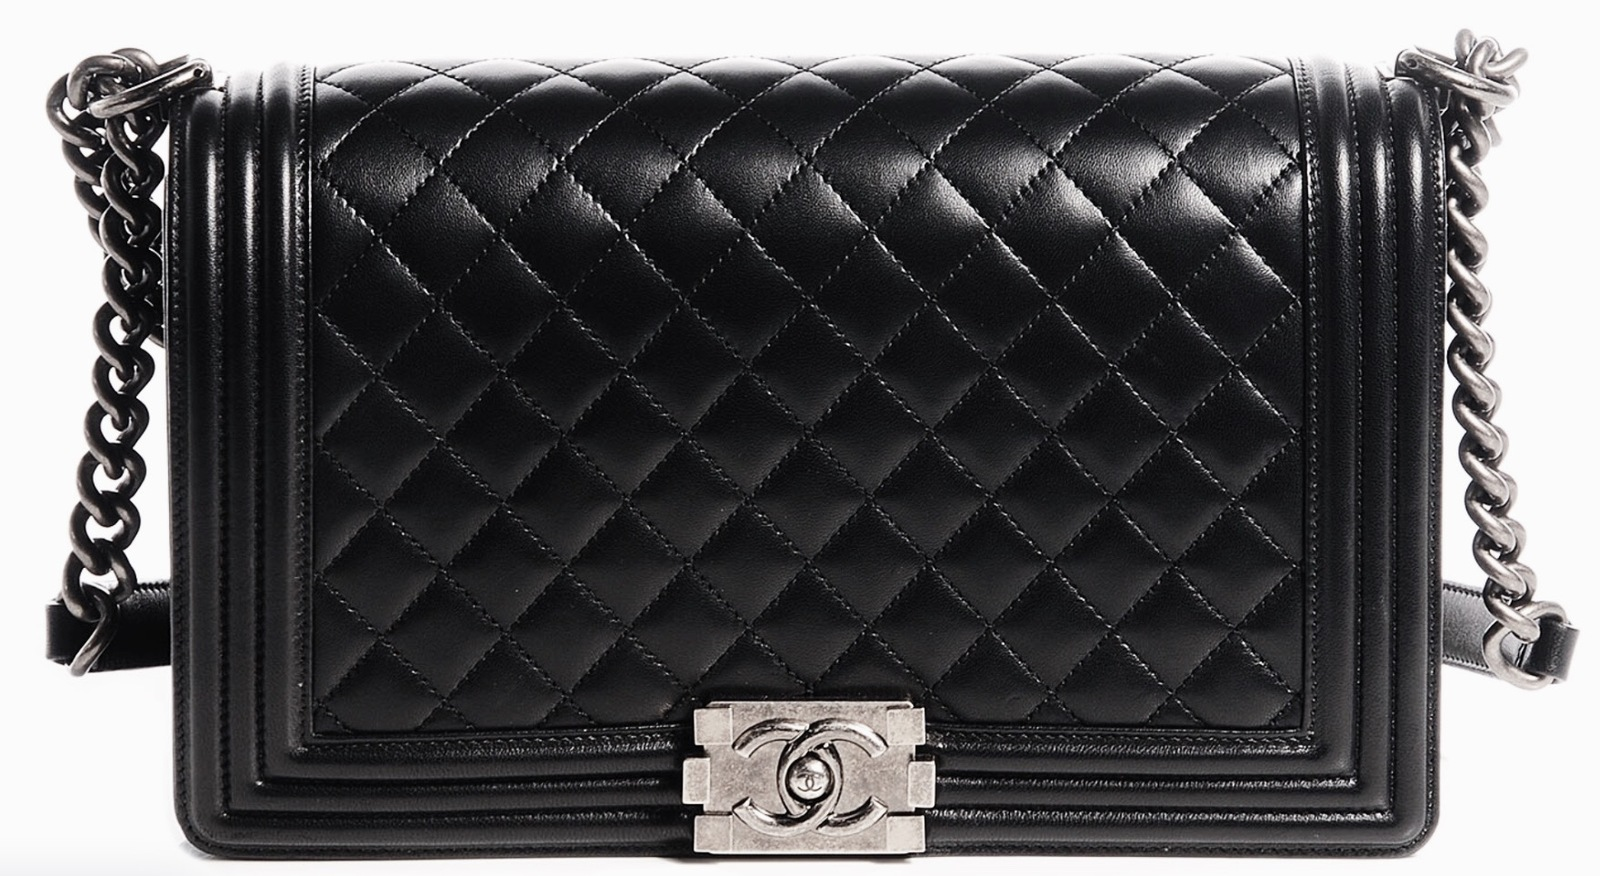 6994522e0dd 100% AUTHENTIC CHANEL BLACK QUILTED LAMBSKIN NEW MEDIUM BOY FLAP BAG ...